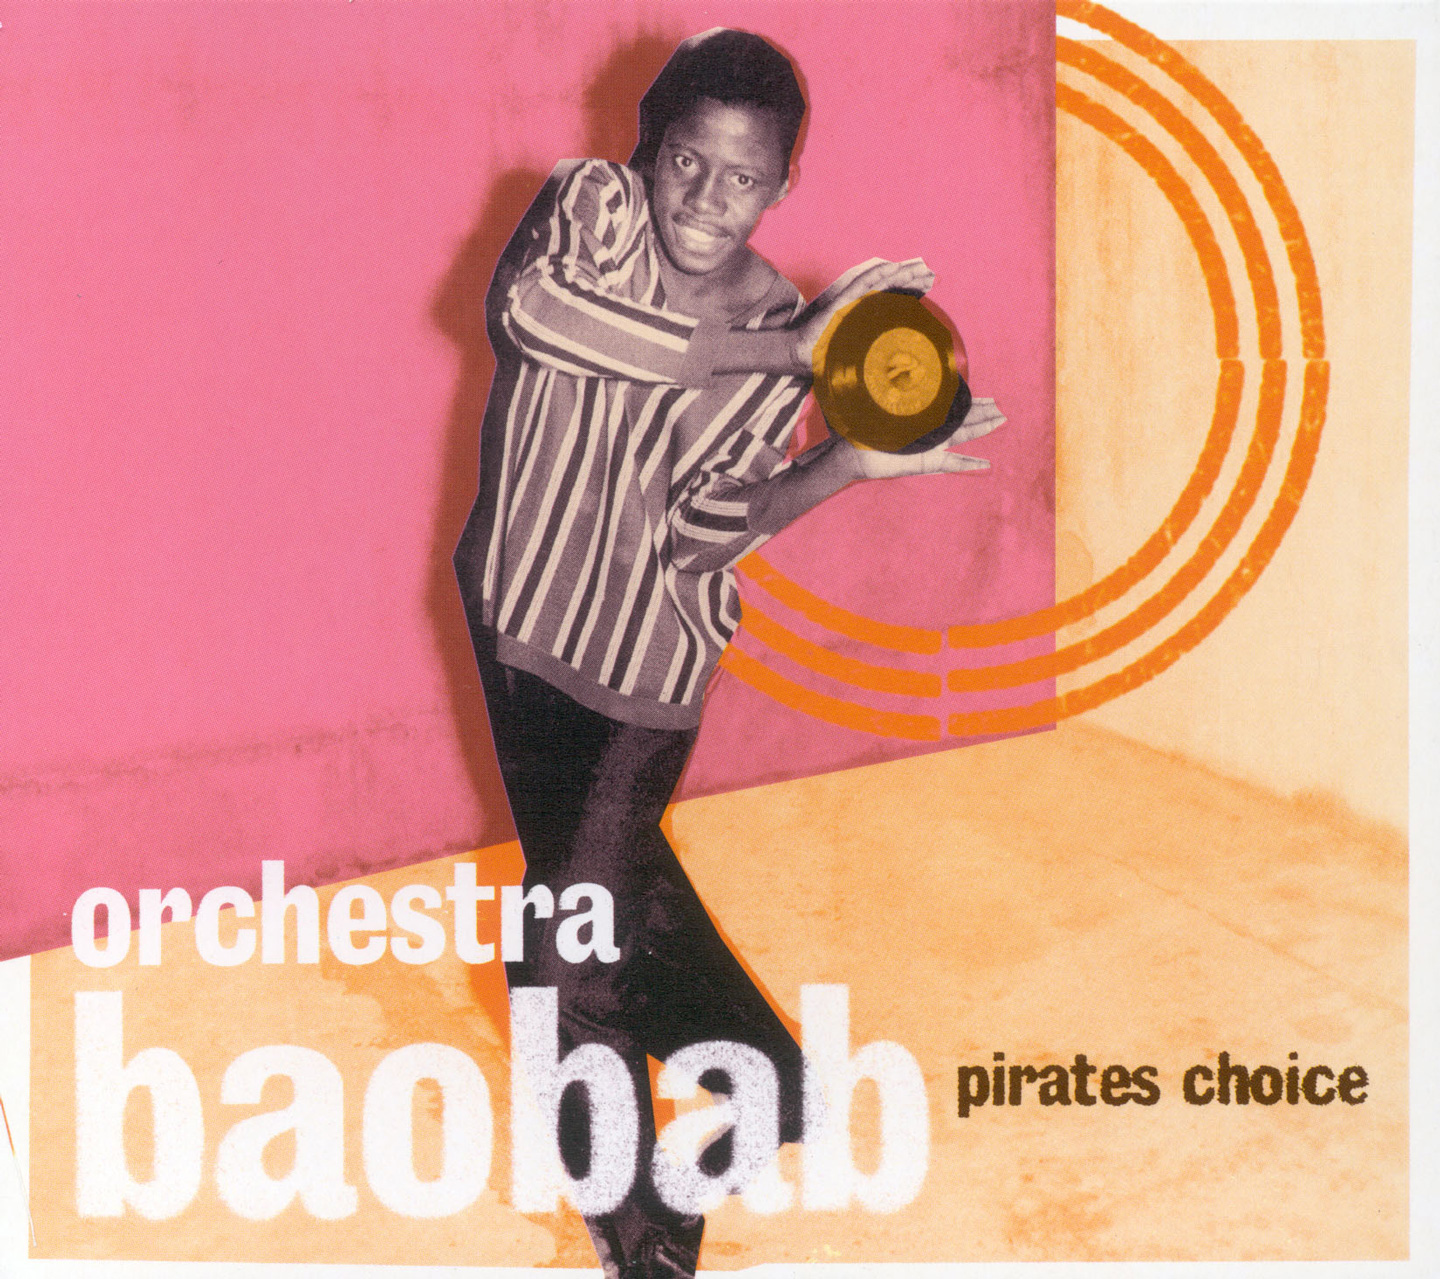 63 Orchestra Baobab Pirates Choice